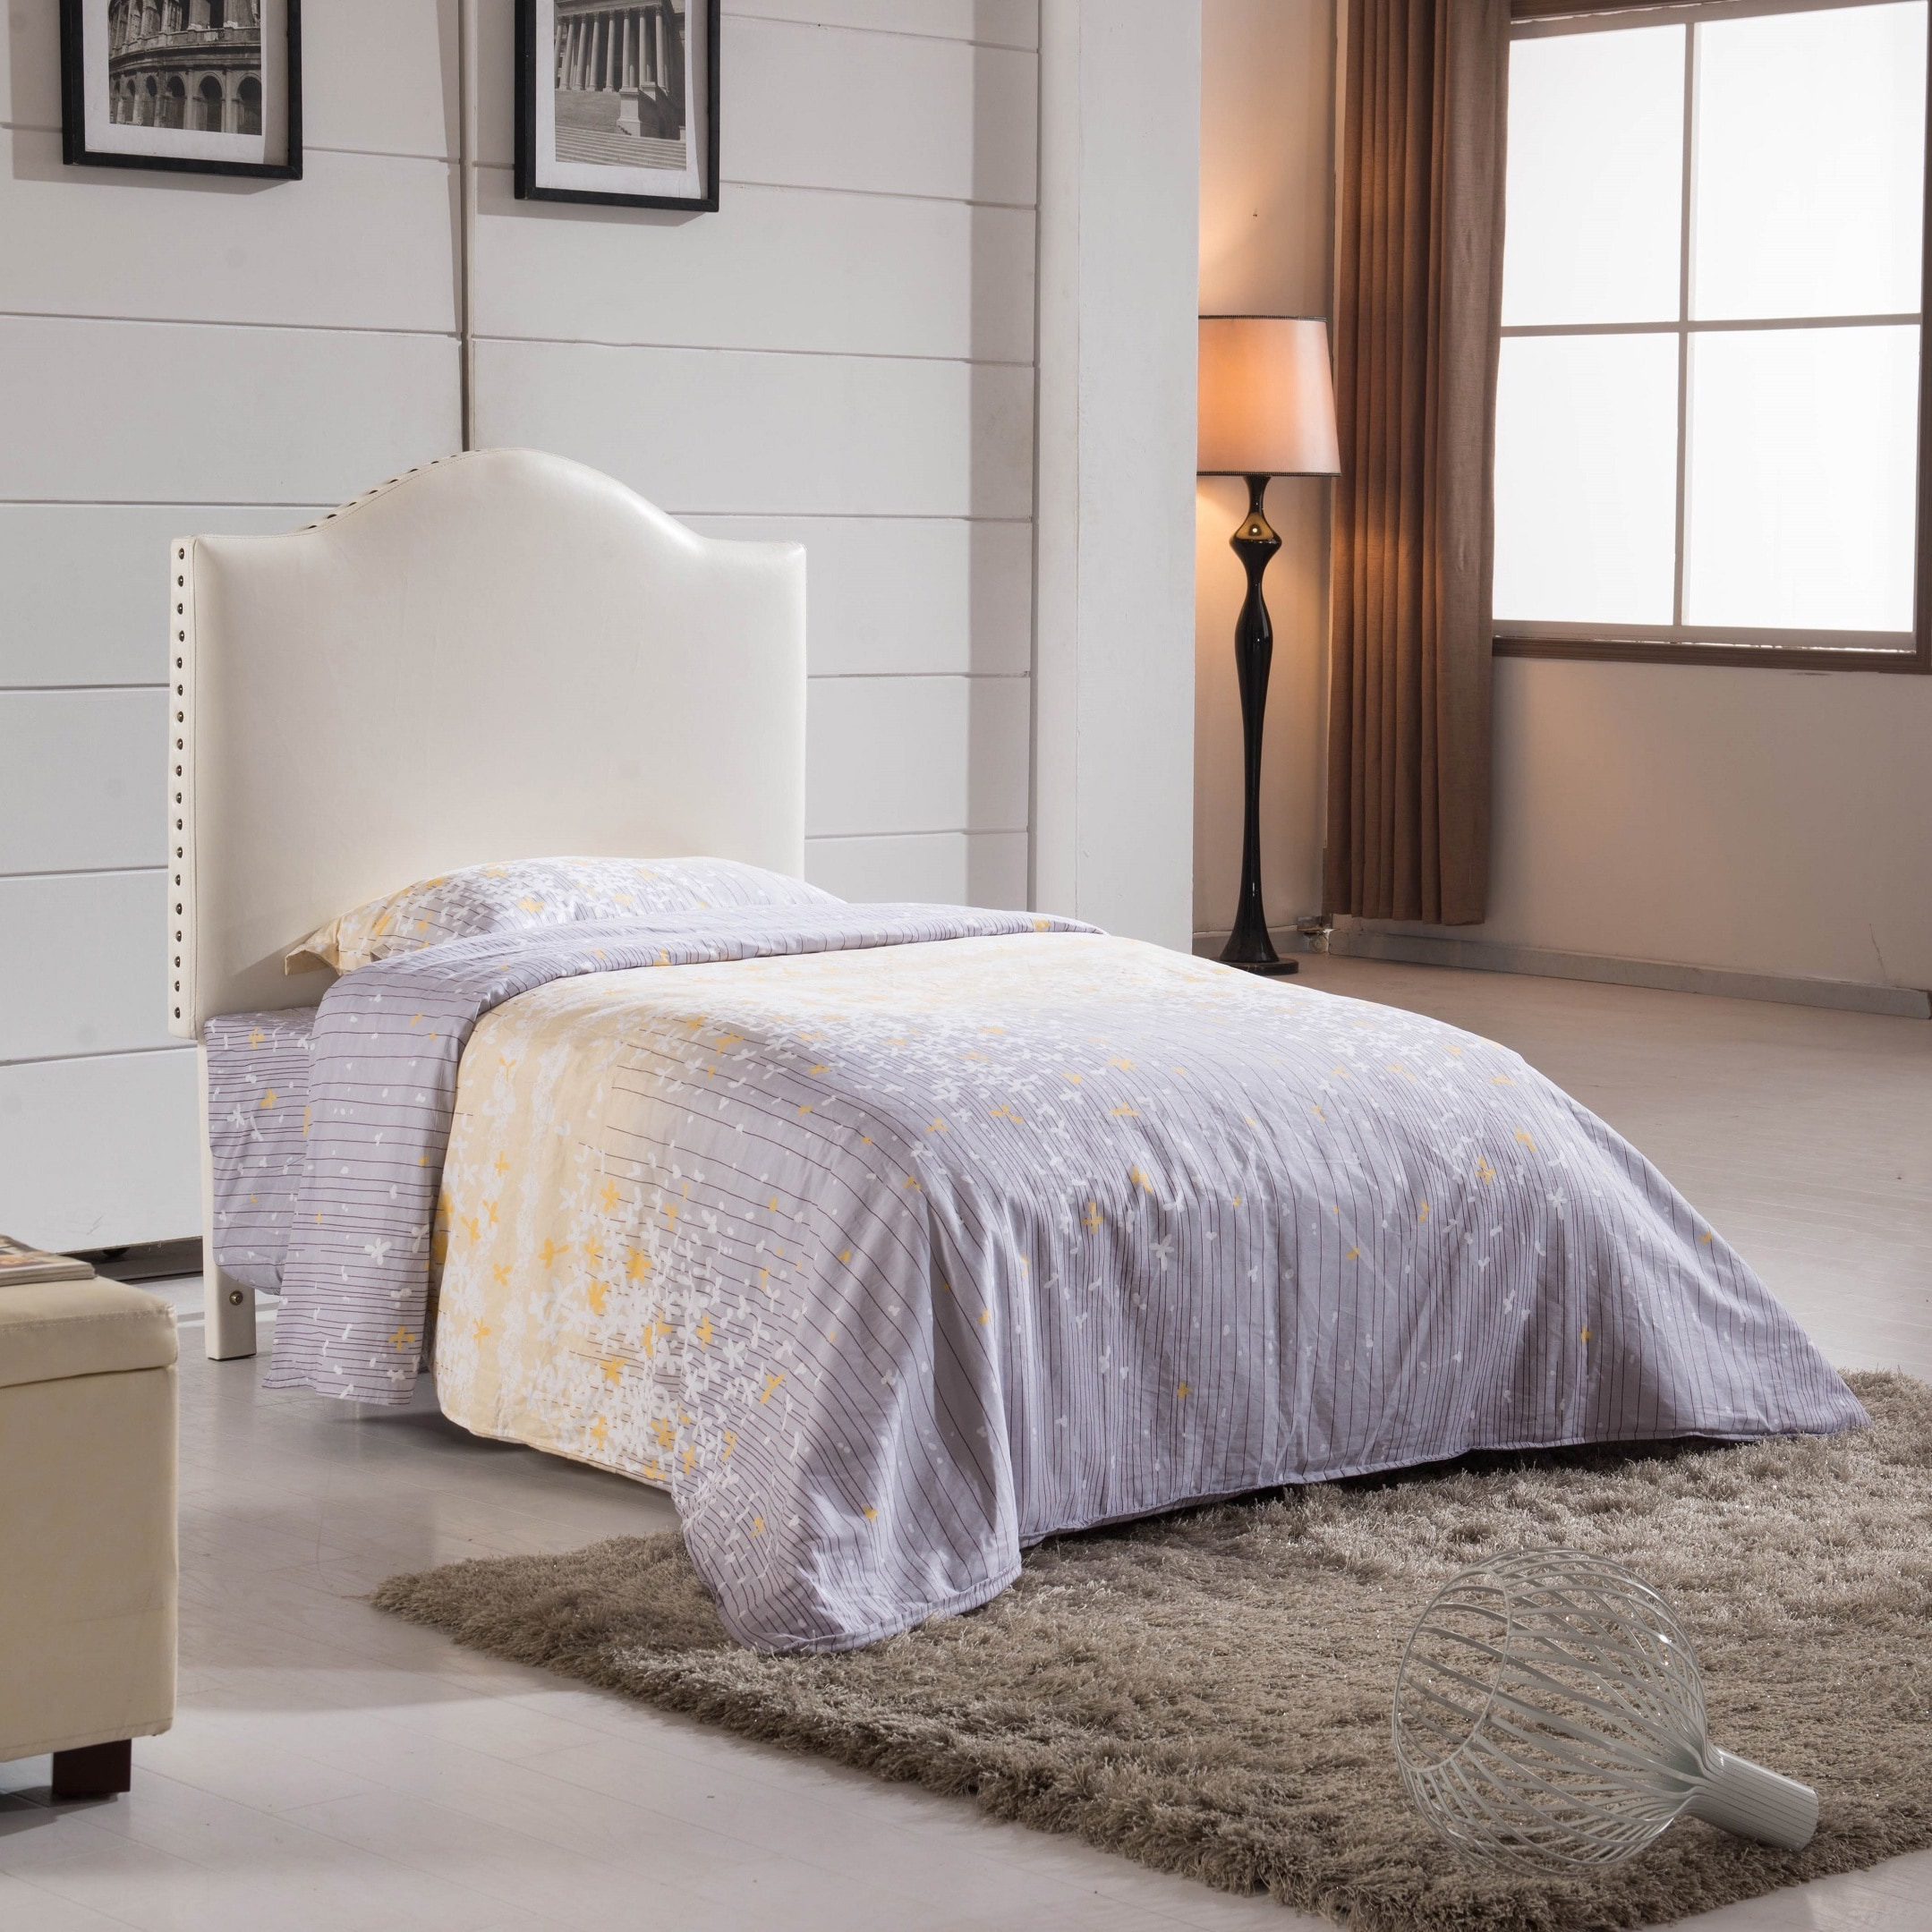 Classic Creamy White Faux Leather With Nailhead Trim Twin